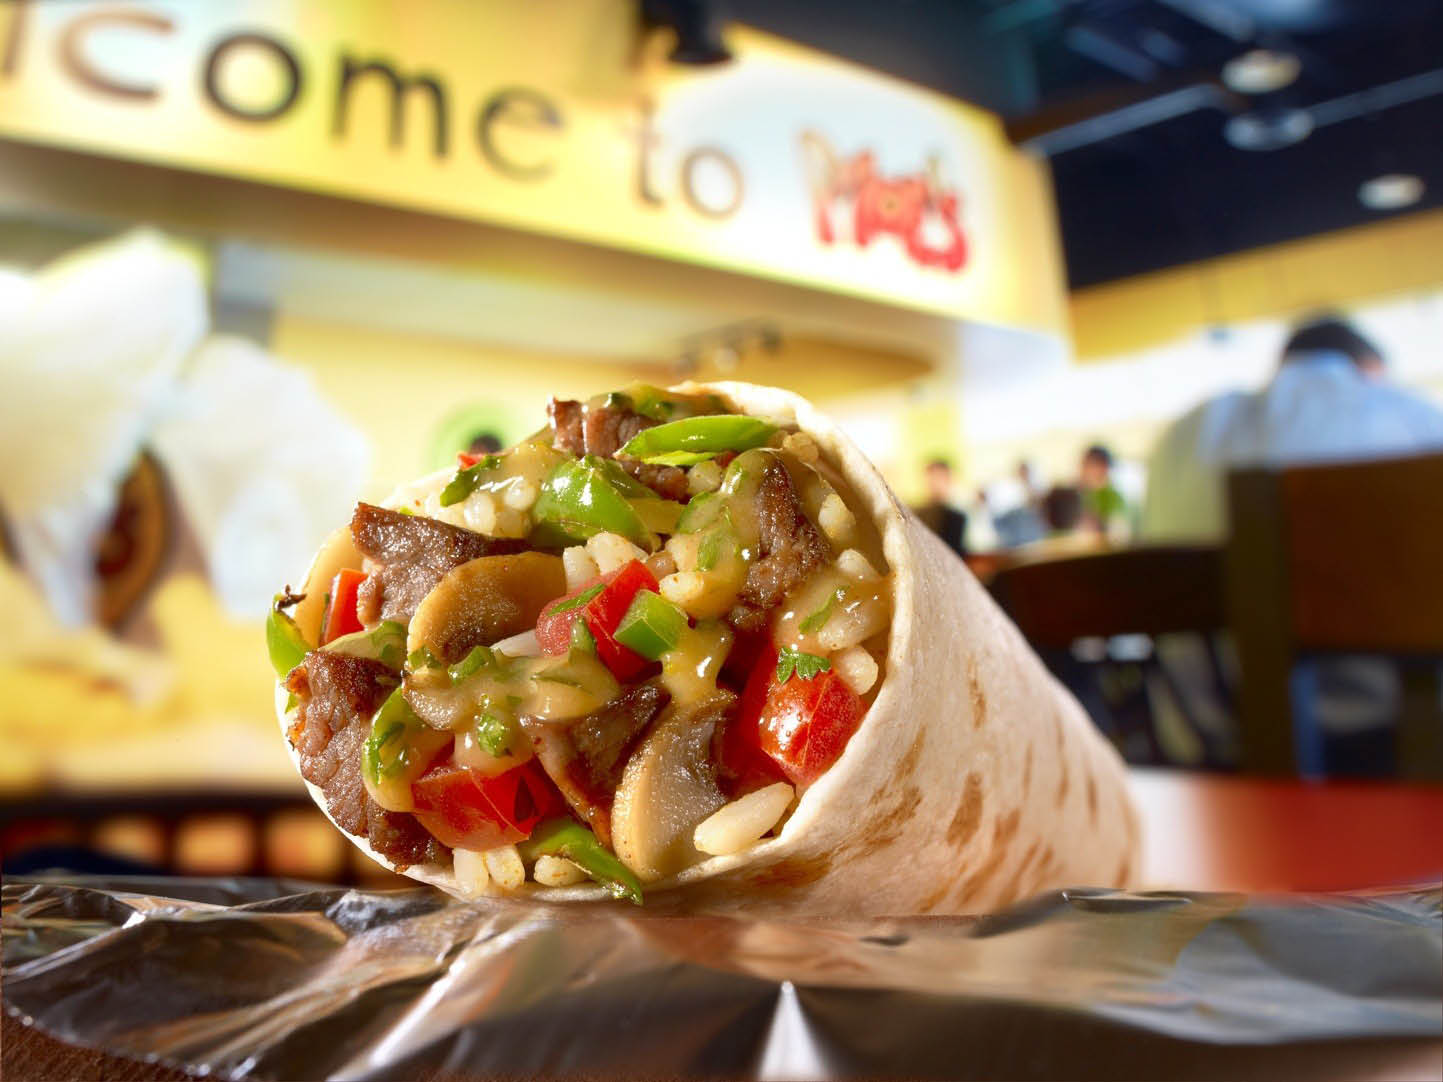 Moe's Southwest & TexMex Grill serves great steak burritos